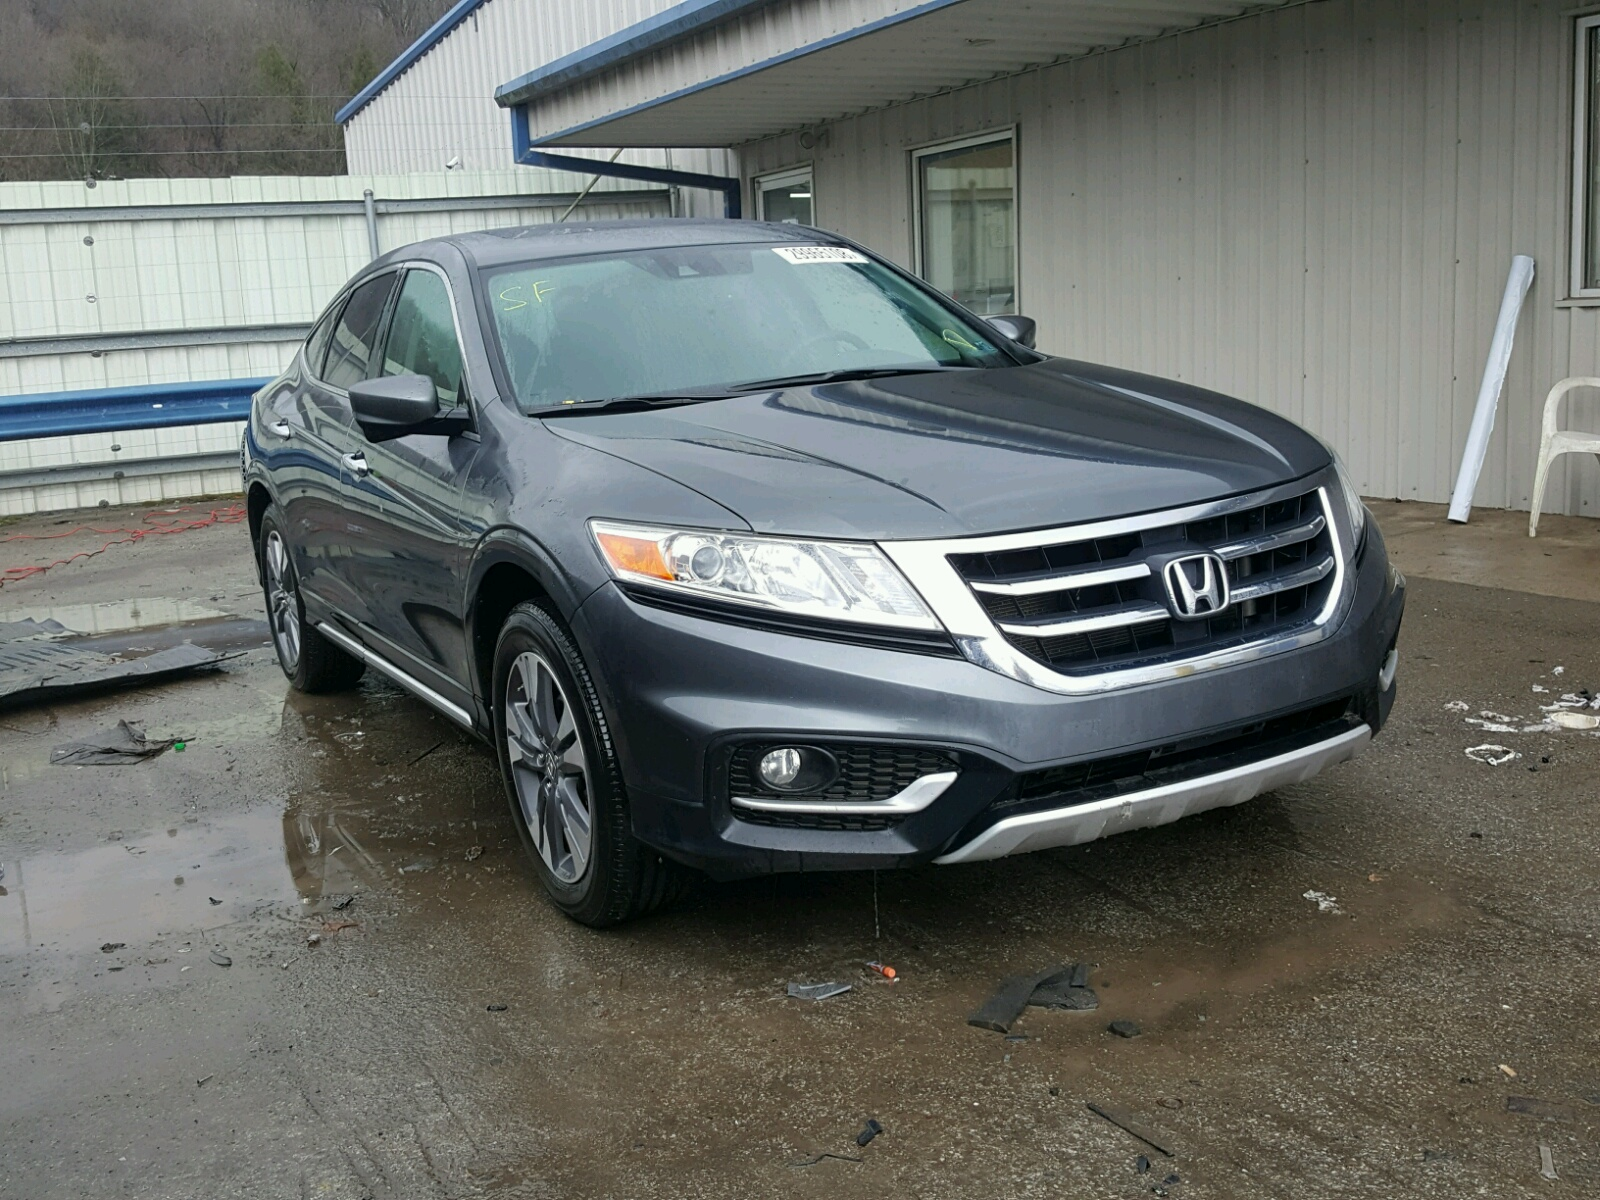 manitoba honda used winnipeg crosstour for inventory sale in